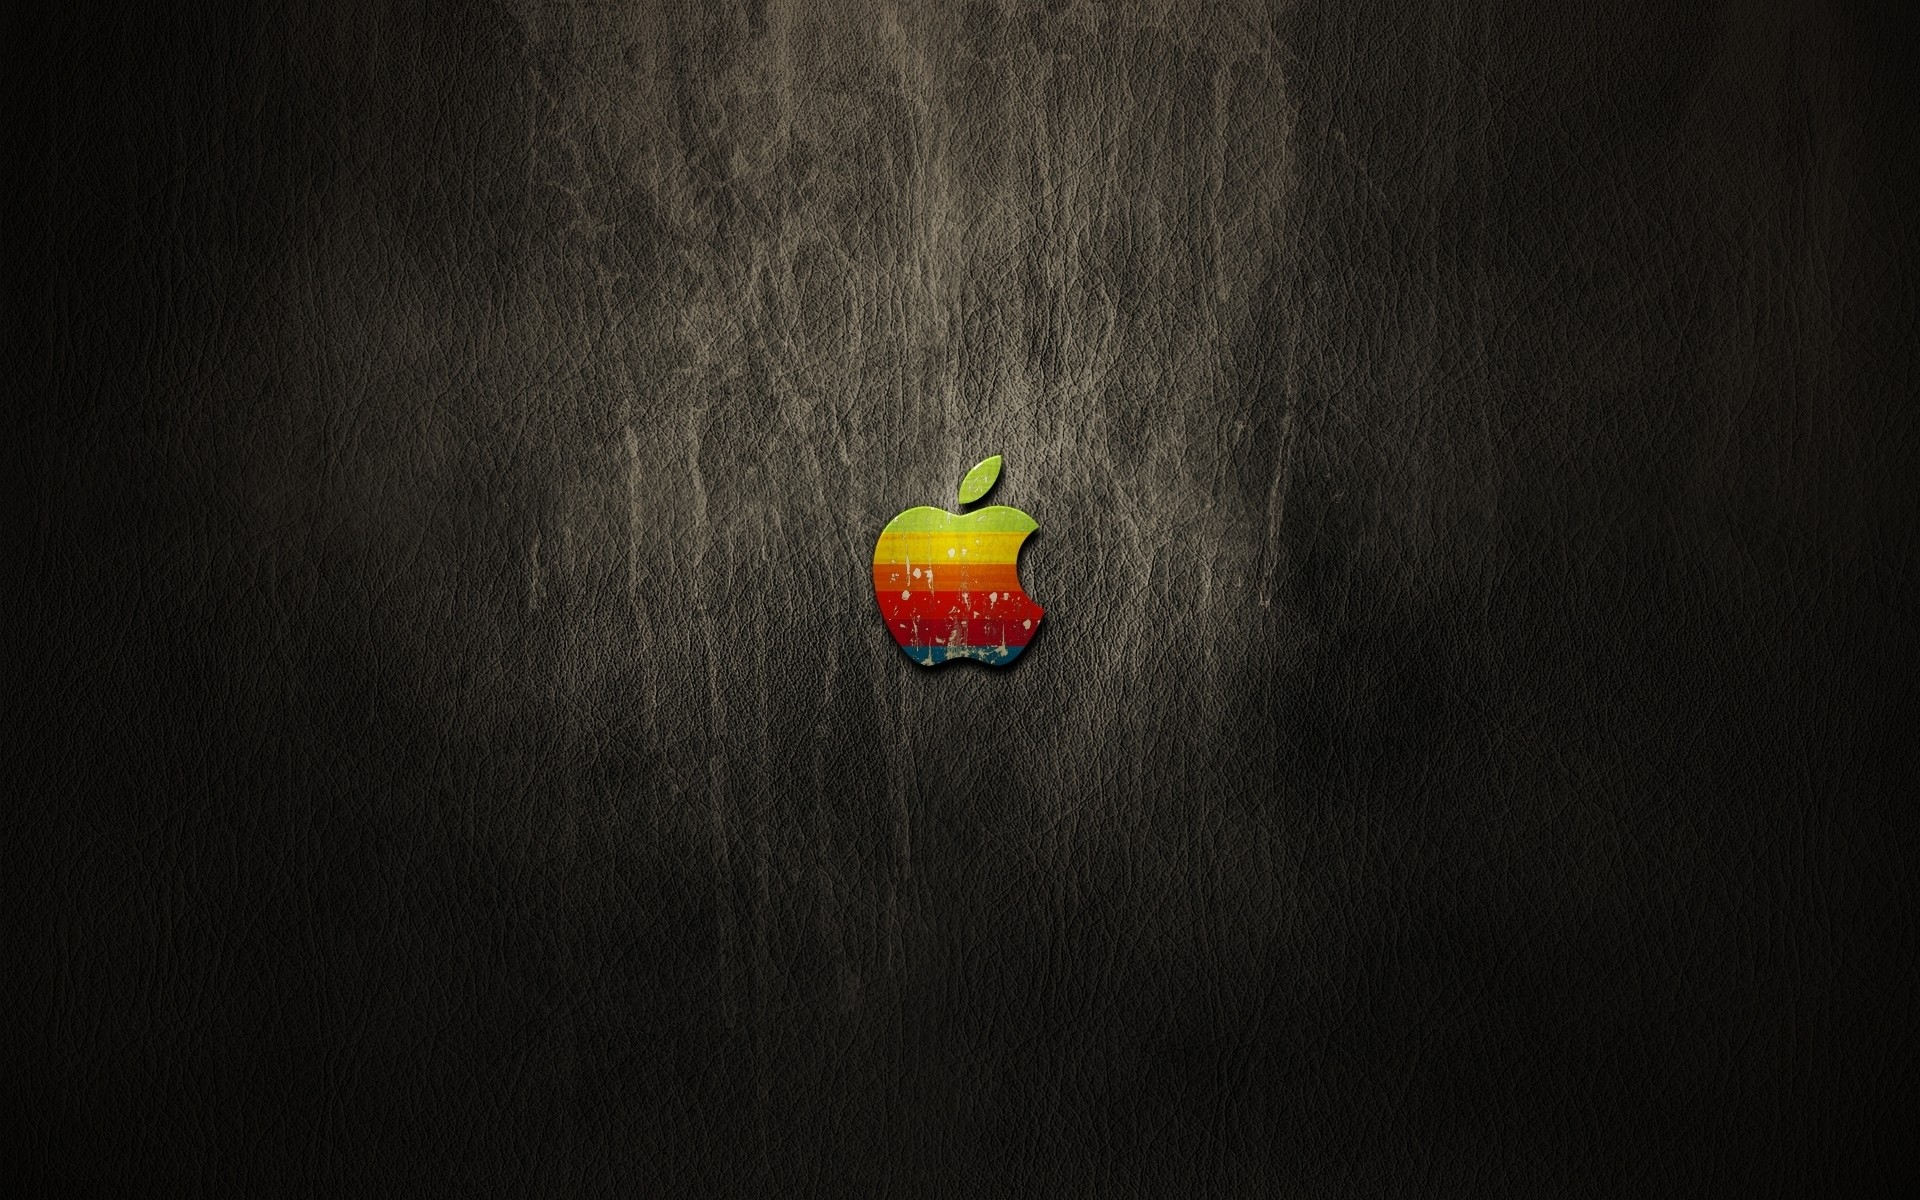 Apple Logo Hd Wallpapers For Iphone 1920 1080 Apple Logo: 36+ Apple Wallpapers ·① Download Free Cool HD Backgrounds